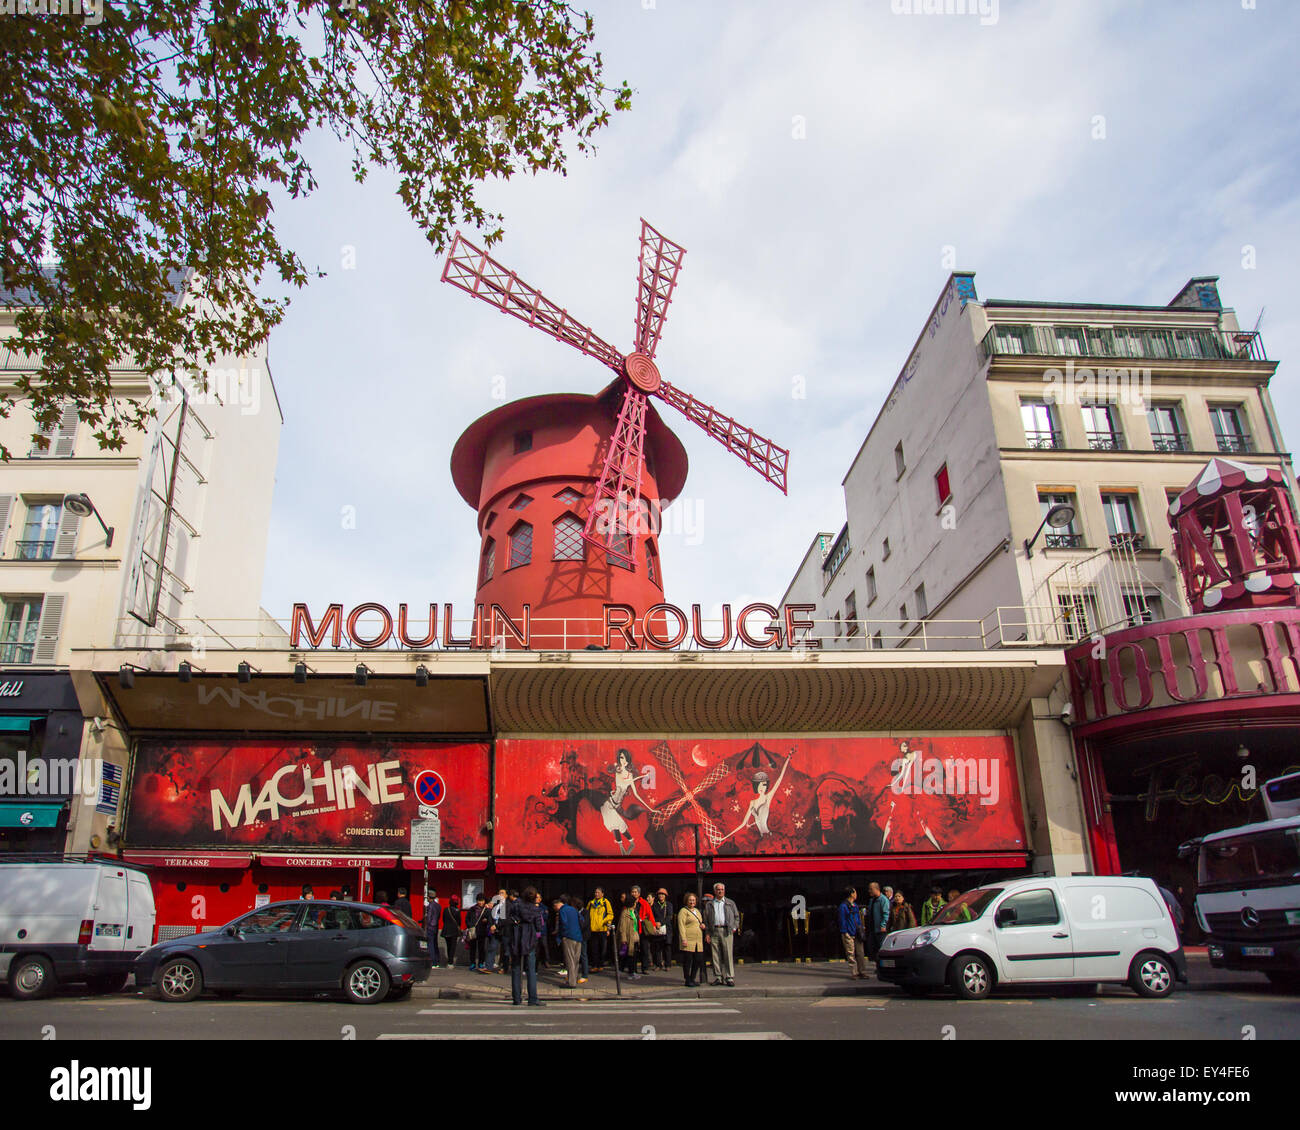 Paris, France - October 9, 2014: Street view of historic Moulin Rouge in Paris France with people and cars visible. - Stock Image